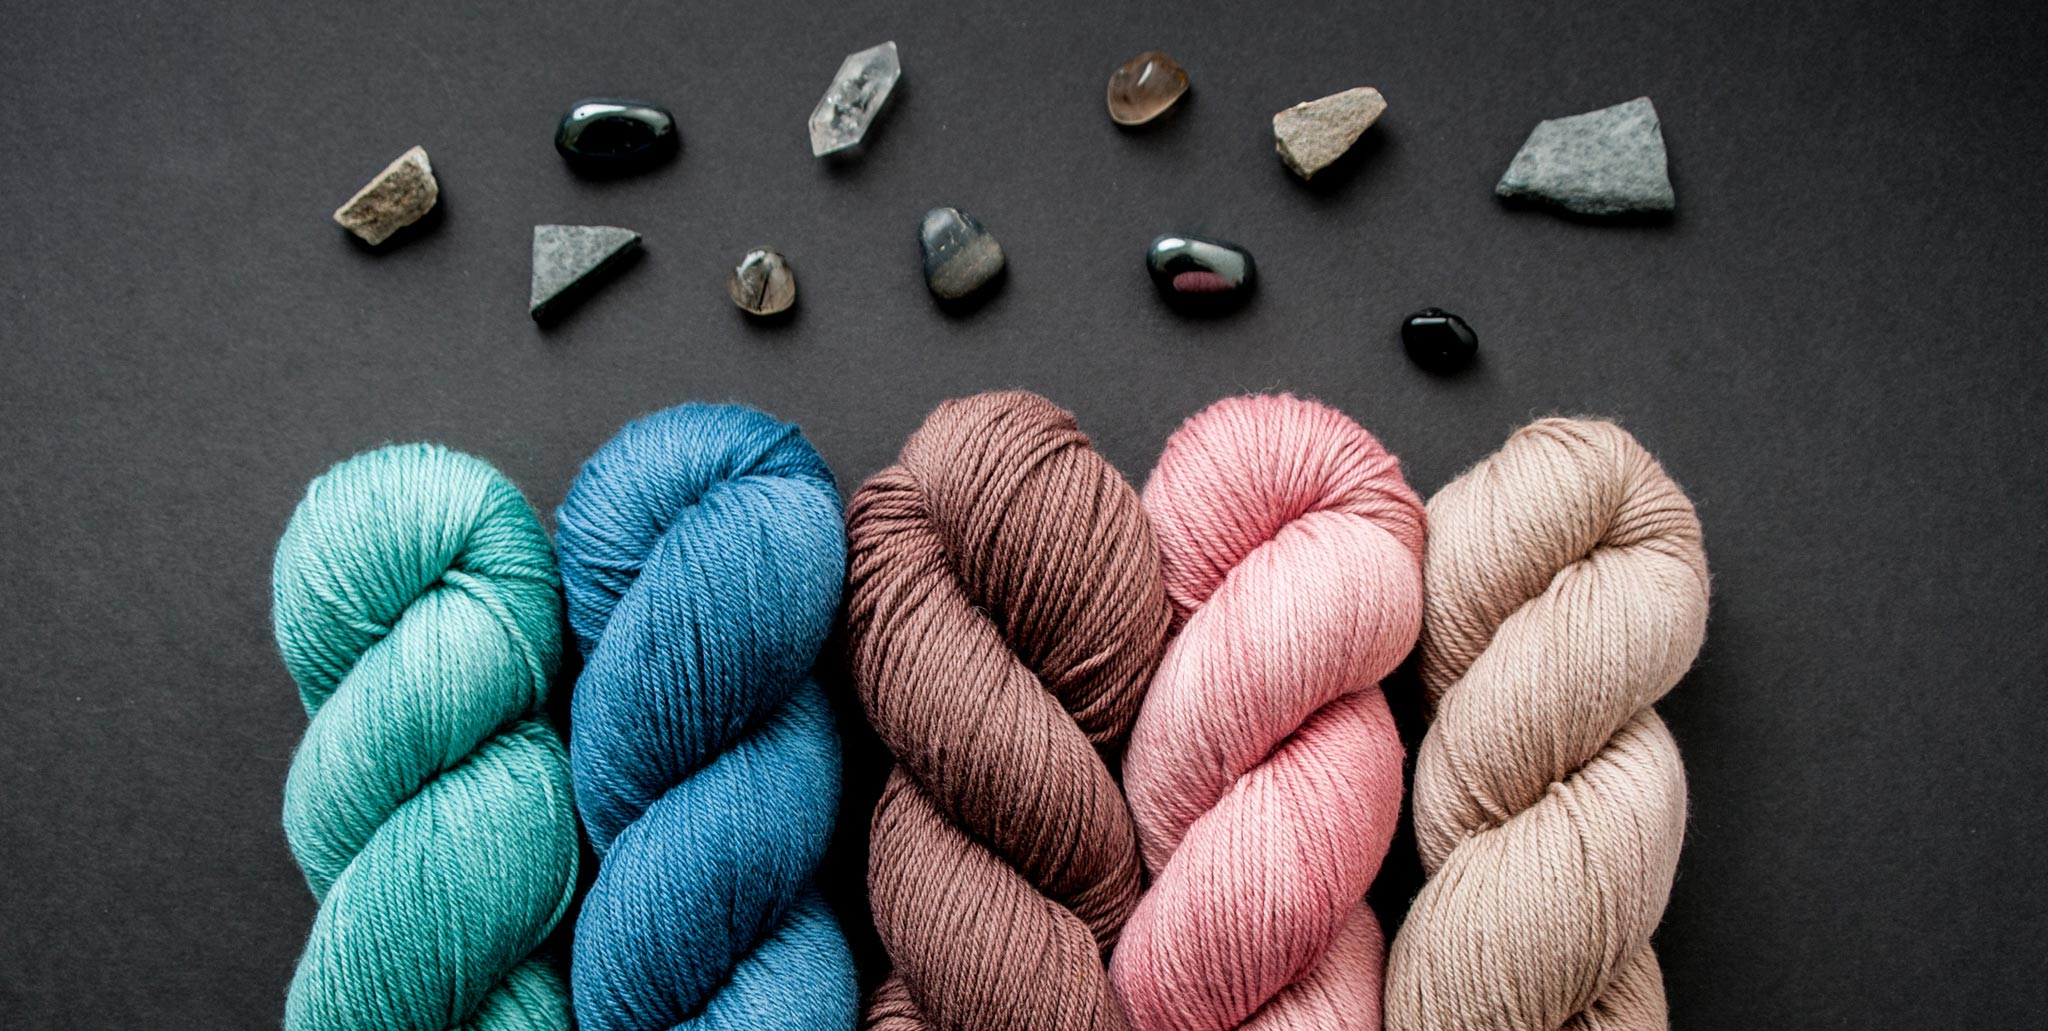 https://quinceandco.com/products/phoebe-yarn-american-extra-fine-merino